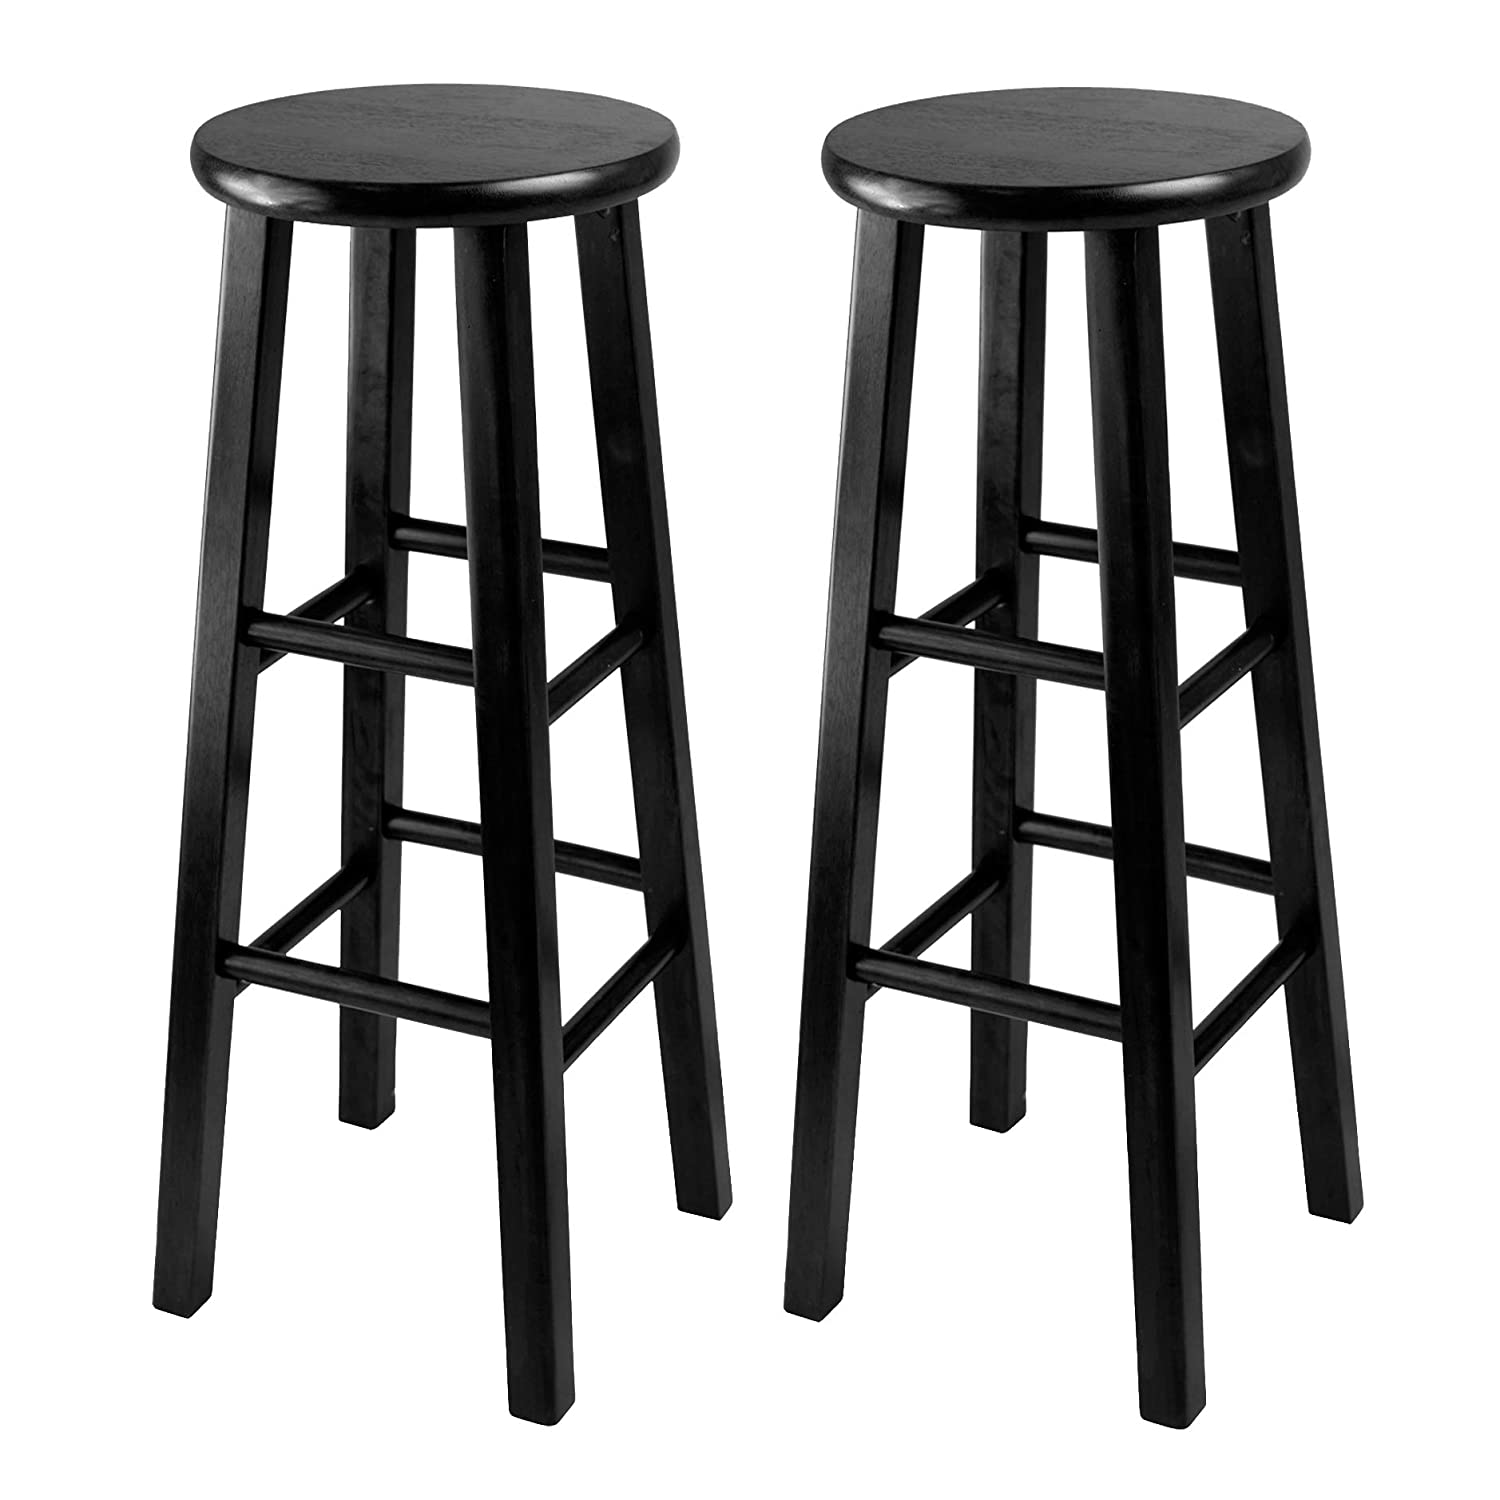 Phenomenal Winsome 29 Inch Square Leg Bar Stool Black Set Of 2 Gmtry Best Dining Table And Chair Ideas Images Gmtryco